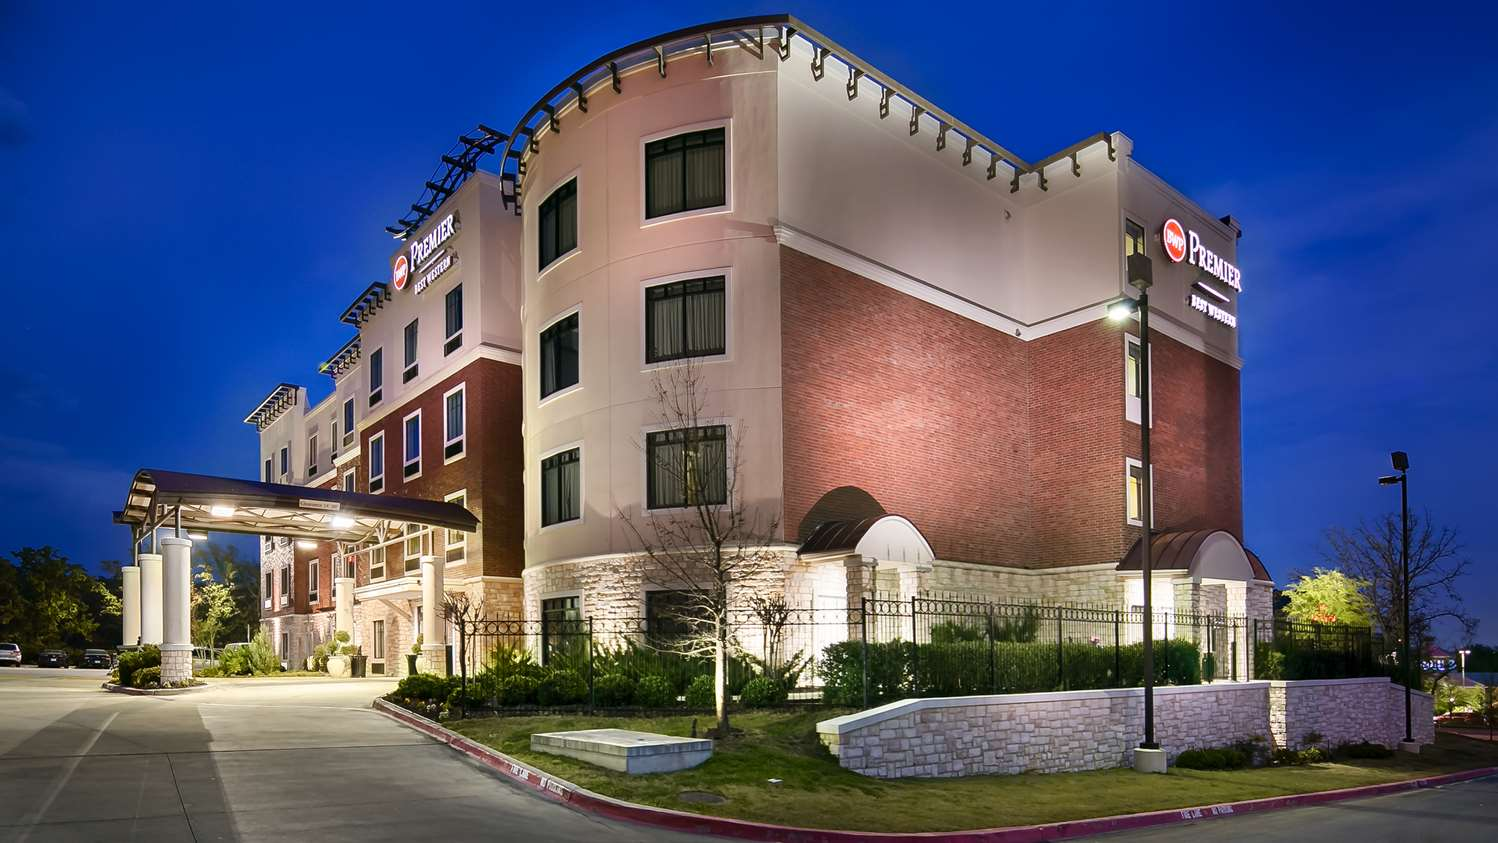 Texas Womanuniversity Denton Texas on Hotels Near Texas Woman S University     Denton  Texas